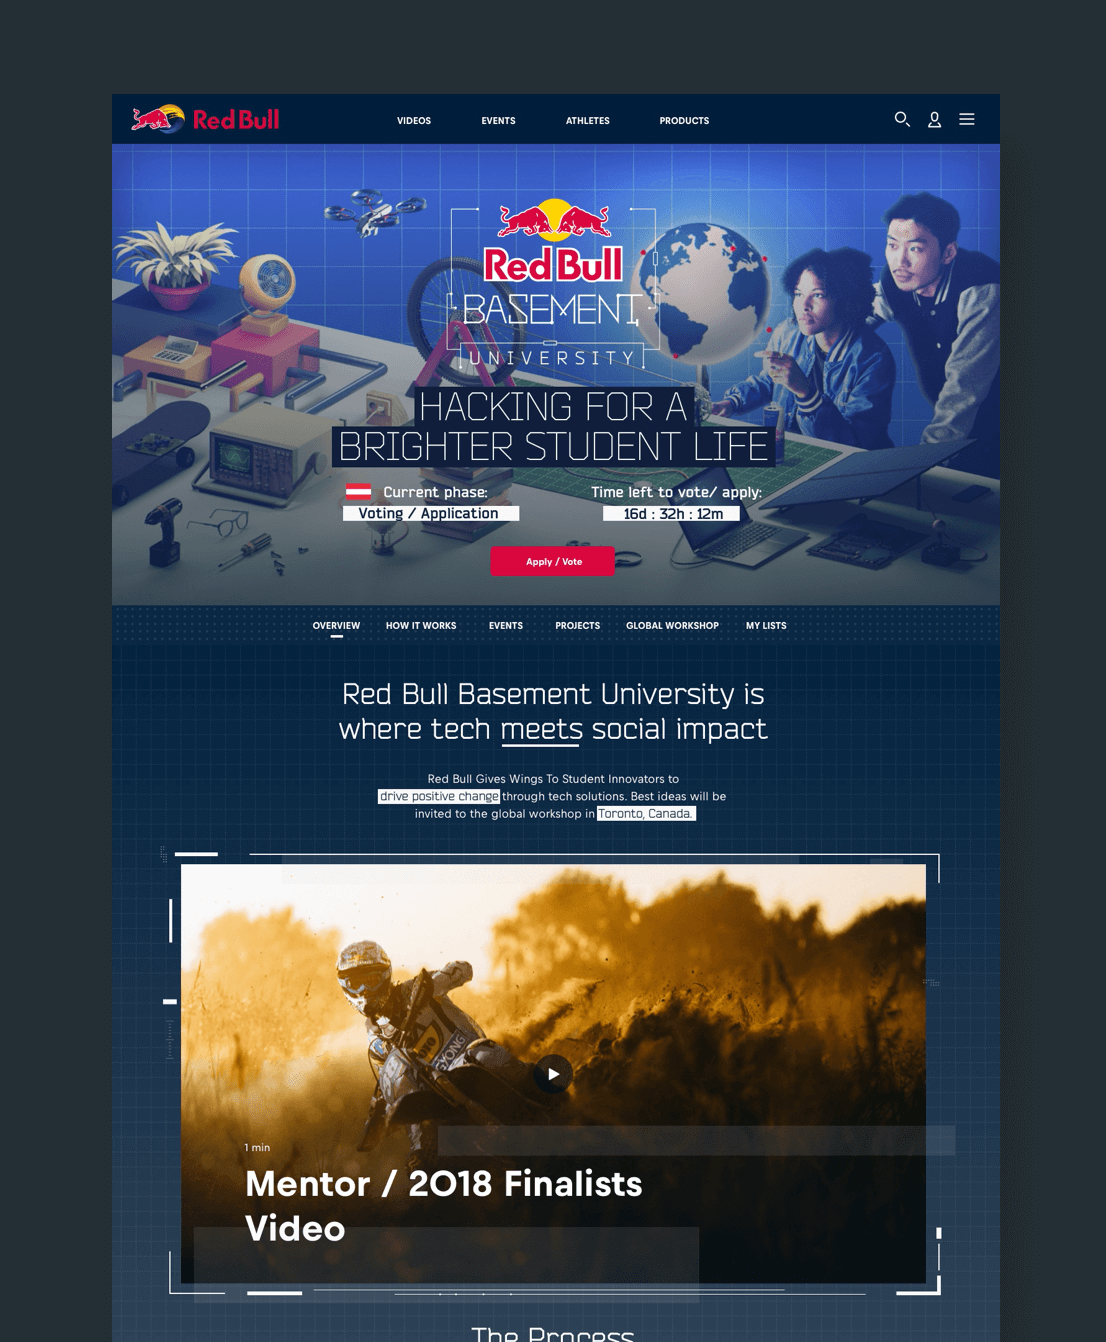 A snapshot of the homepage for Red Bull Basement University